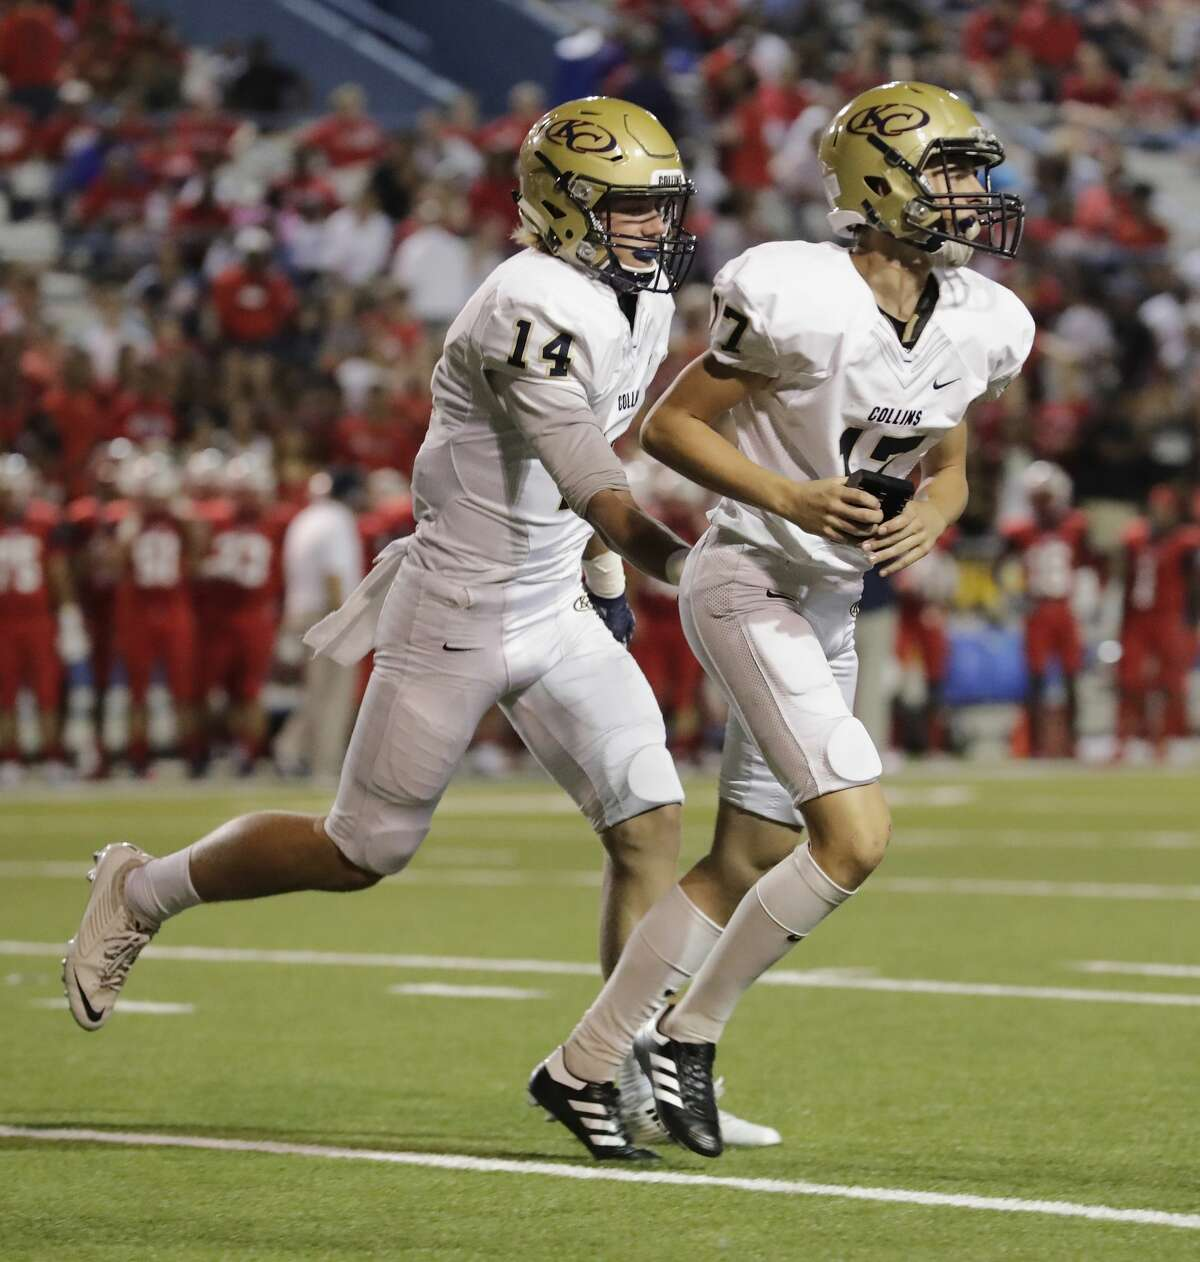 HOUSTON CHRONICLE HIGH SCHOOL FOOTBALL RANKINGS Class 6A 2. Klein Collins 1-0 (128)